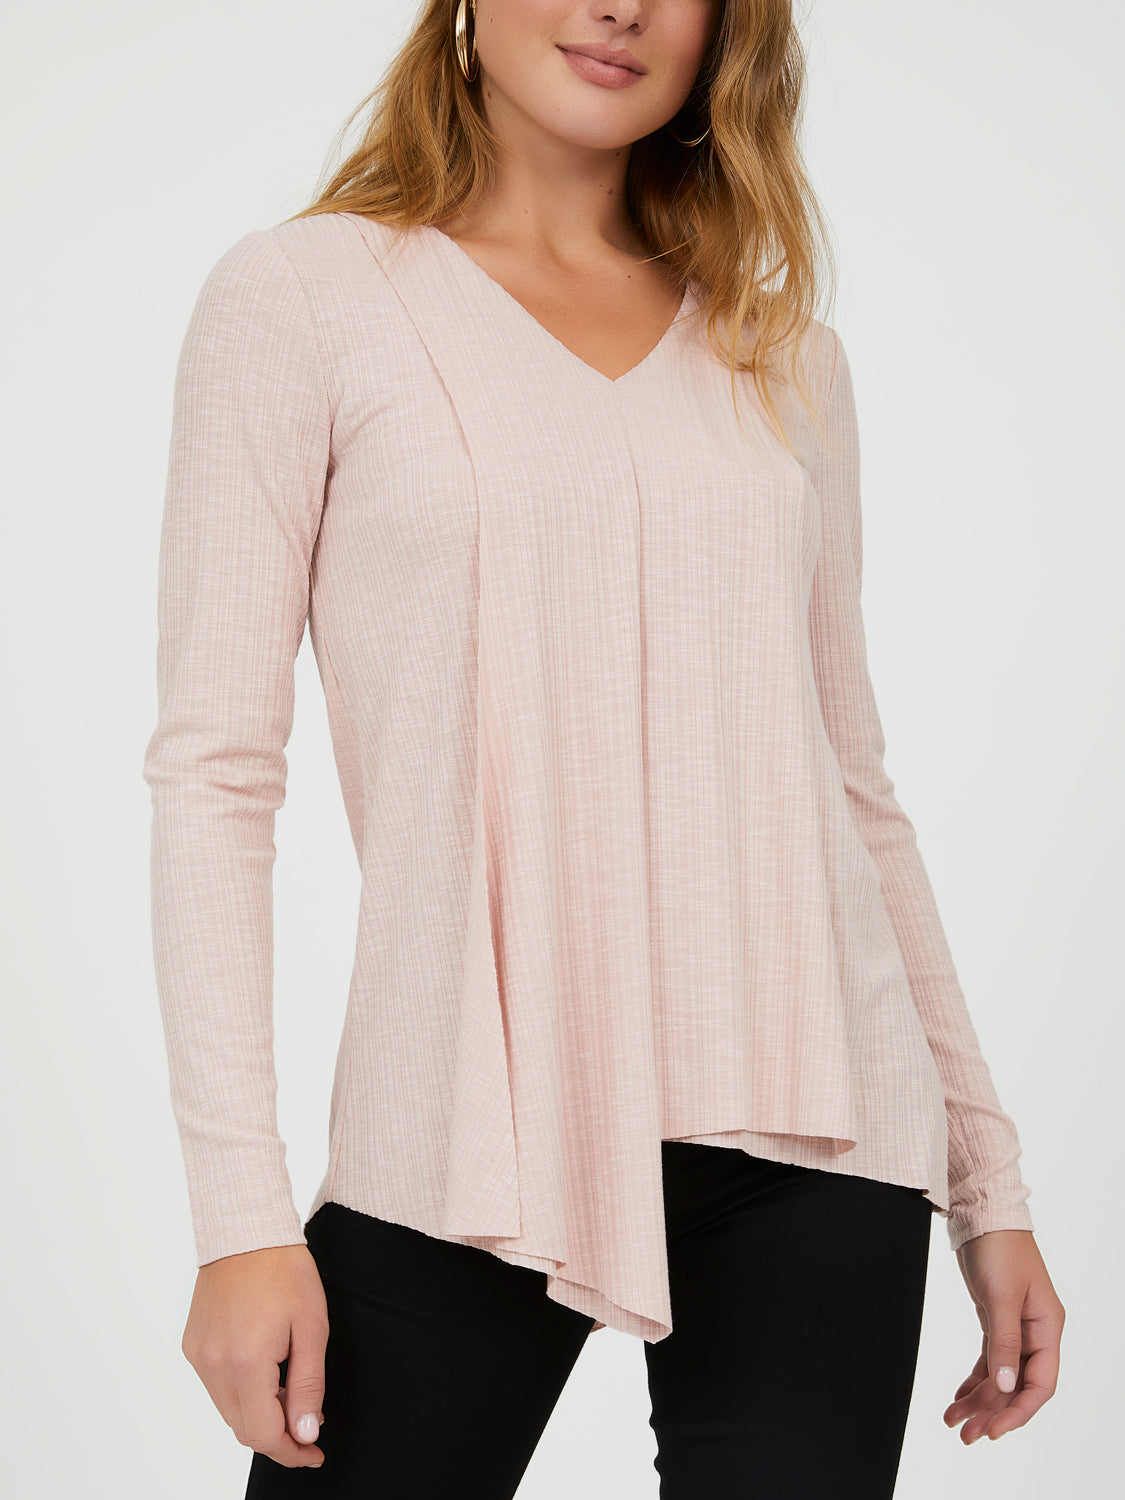 Long Sleeve Asymmetrical V-Neck Top